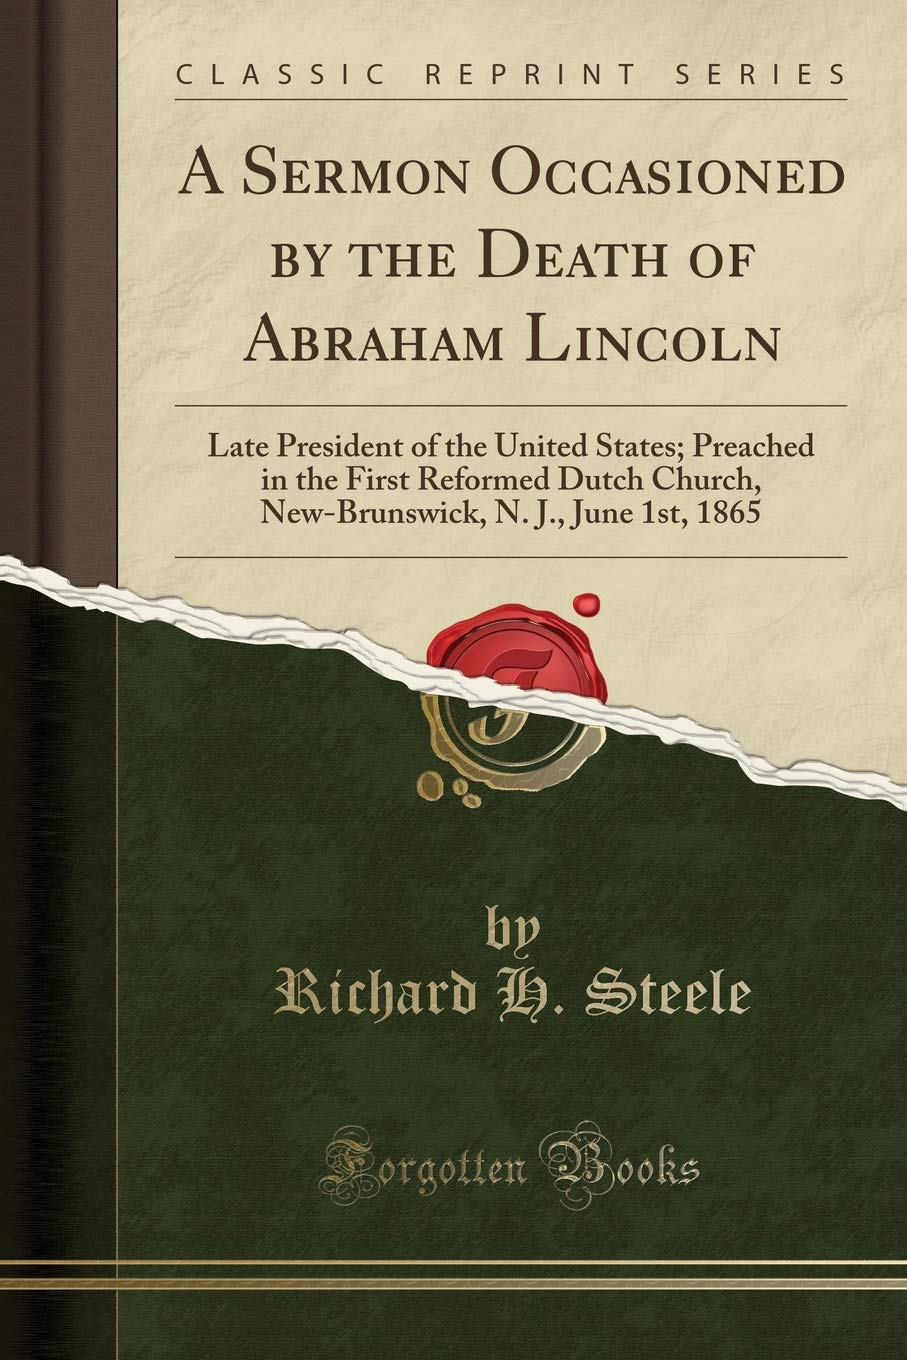 Sermon On the Death OF Abraham Lincoln